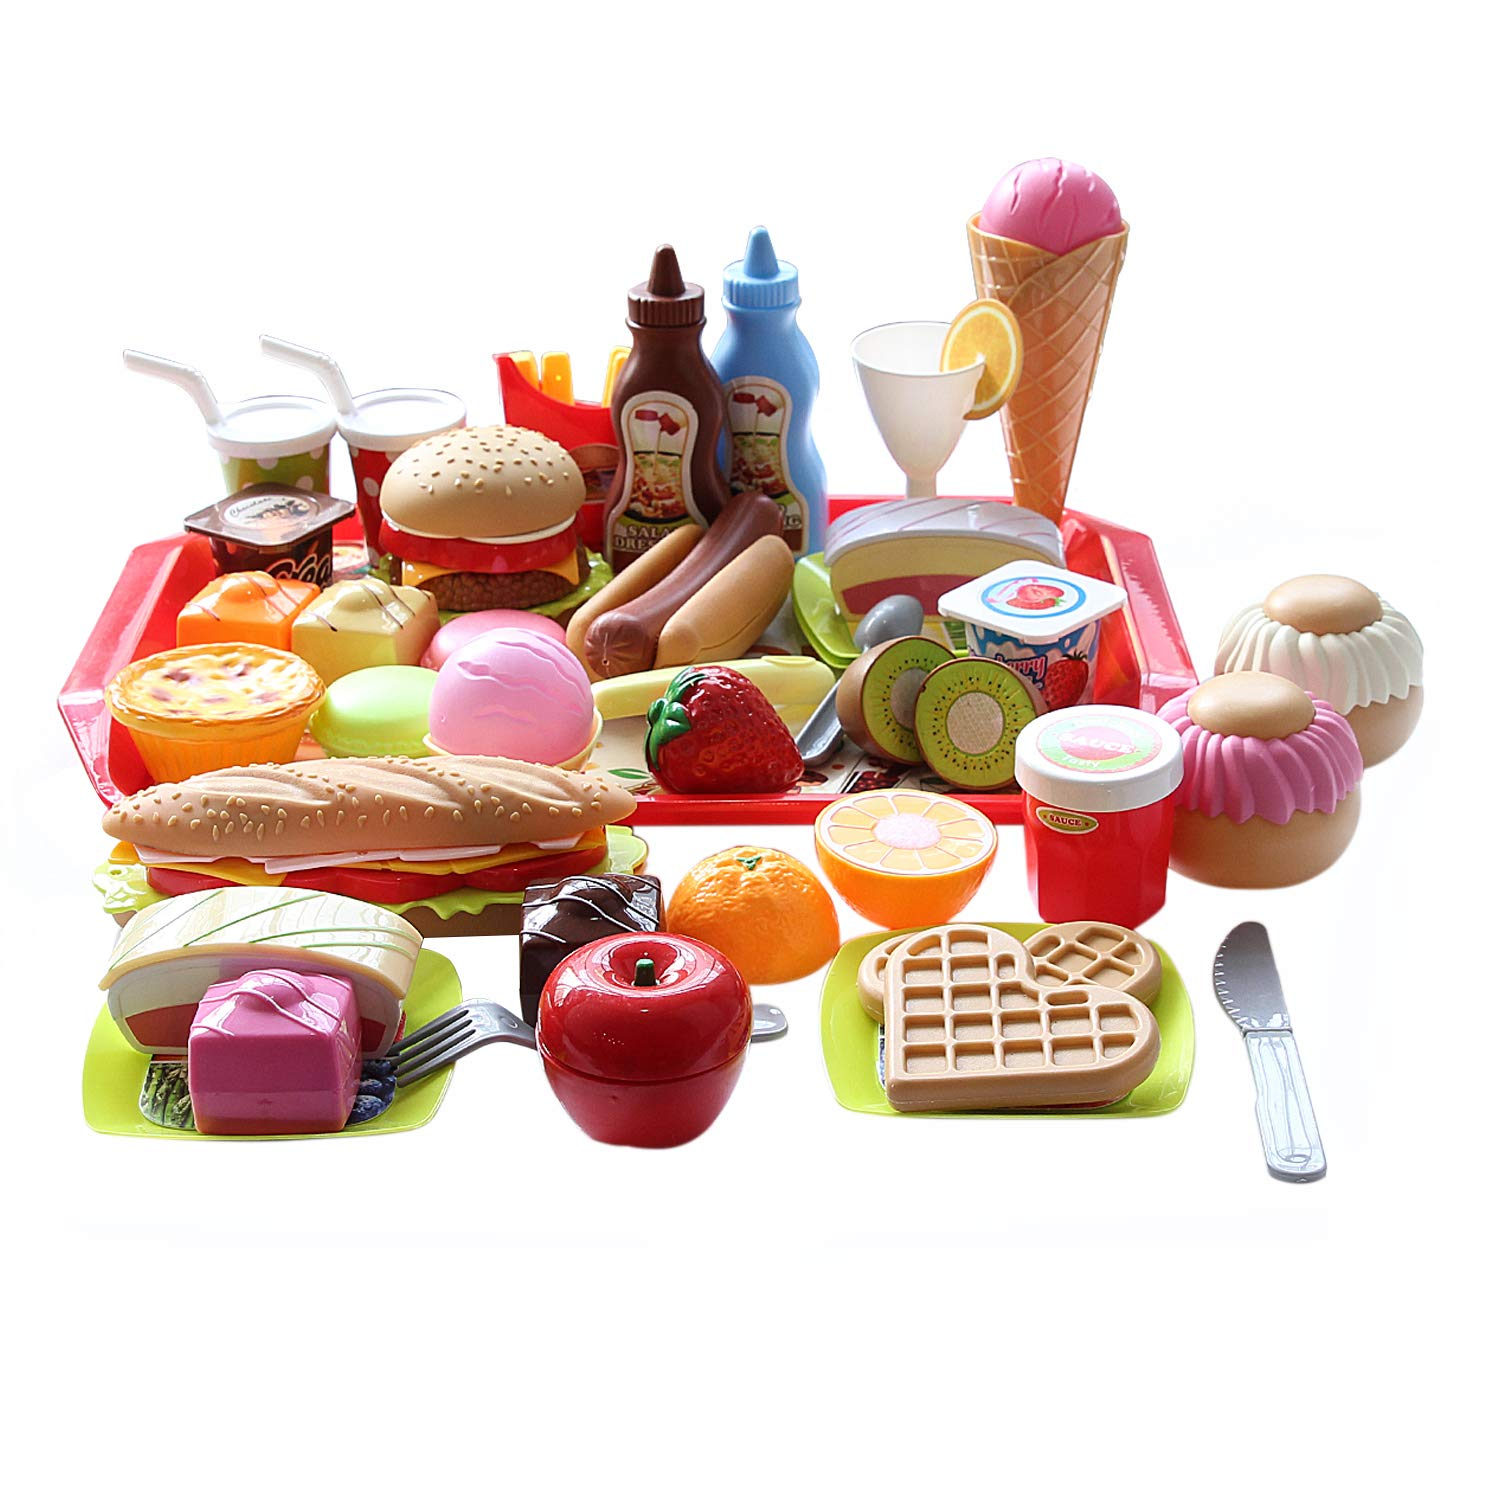 CatchStar Fast Food Toy Set Variety Fast Food Pretend Playset Durable Plastic Pretend Play Food Snack Fast Food Burger French Fries Toys Gift for Kids Toddler Childrens Play Kitchen Outdoor Picnic